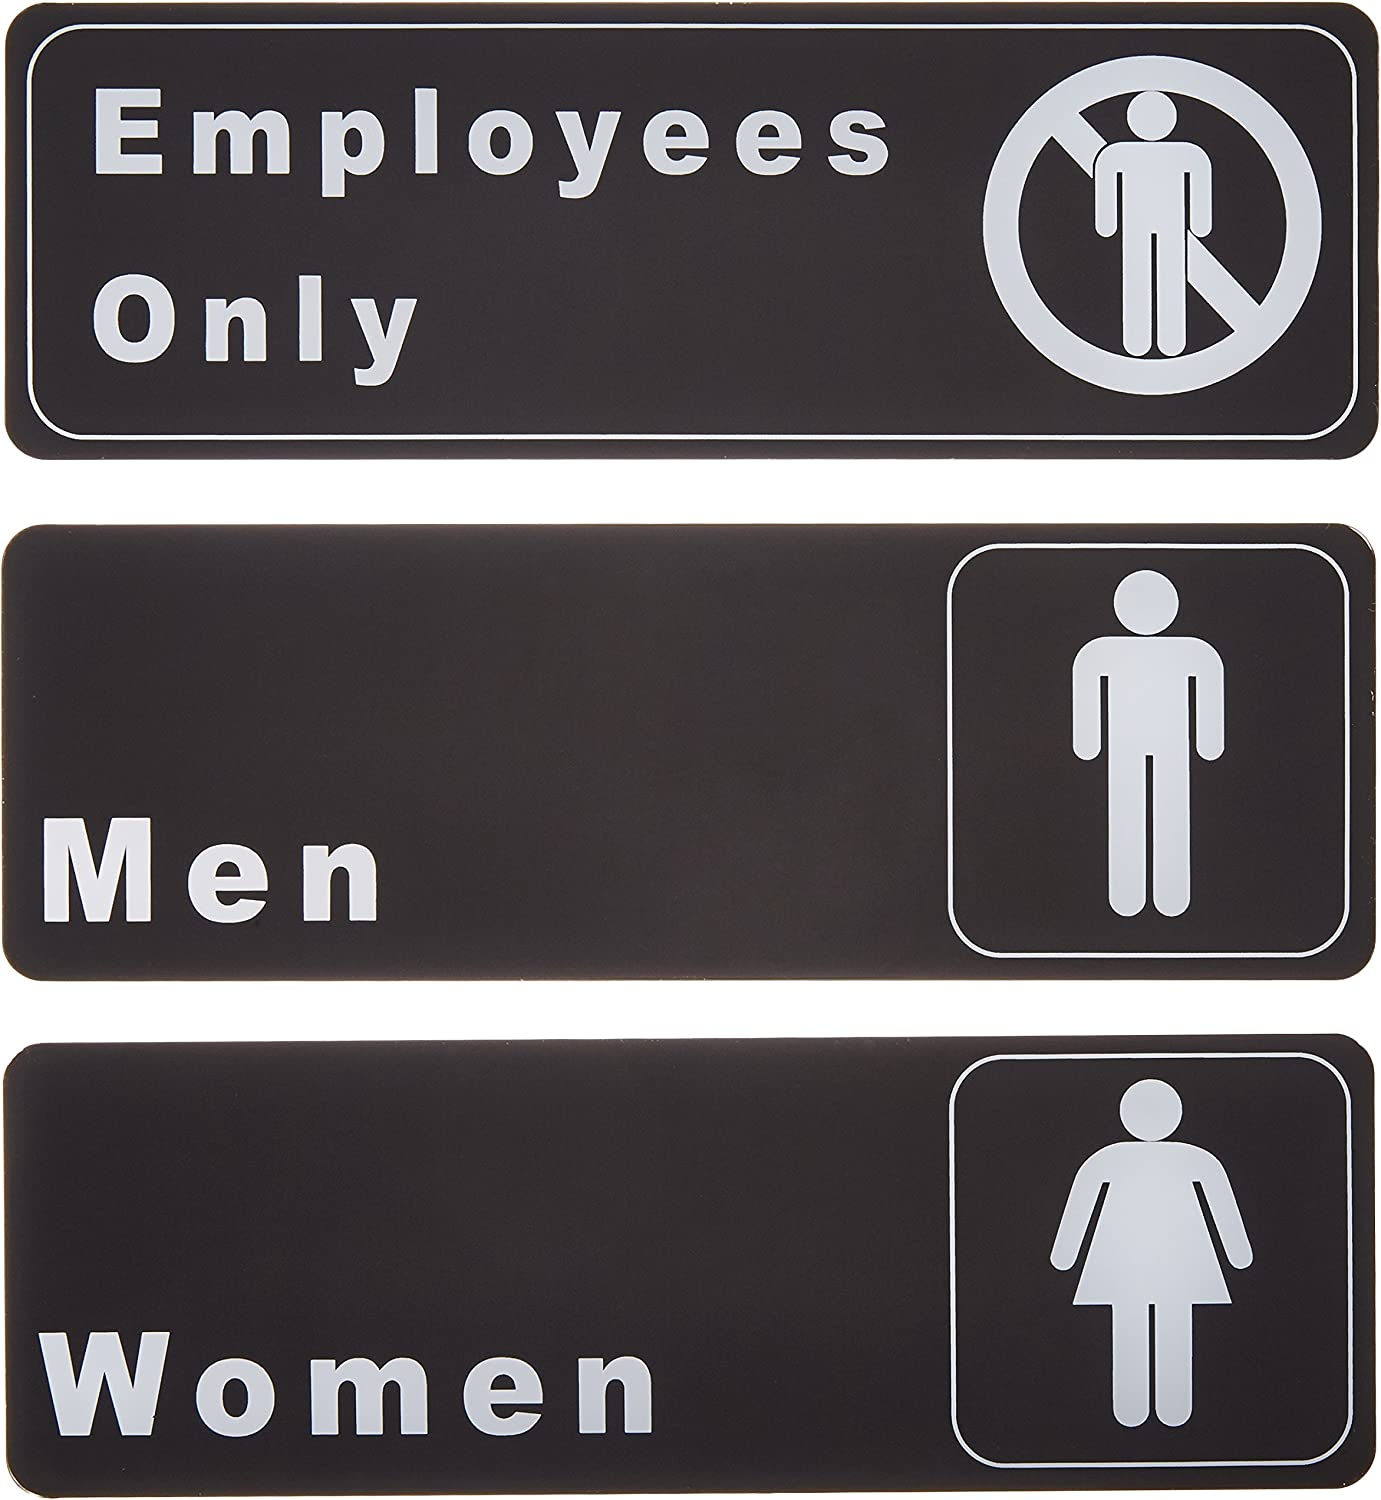 Restroom Toilet Black /& White Business Cafe Shop Sign Wall Plaque or Hanging